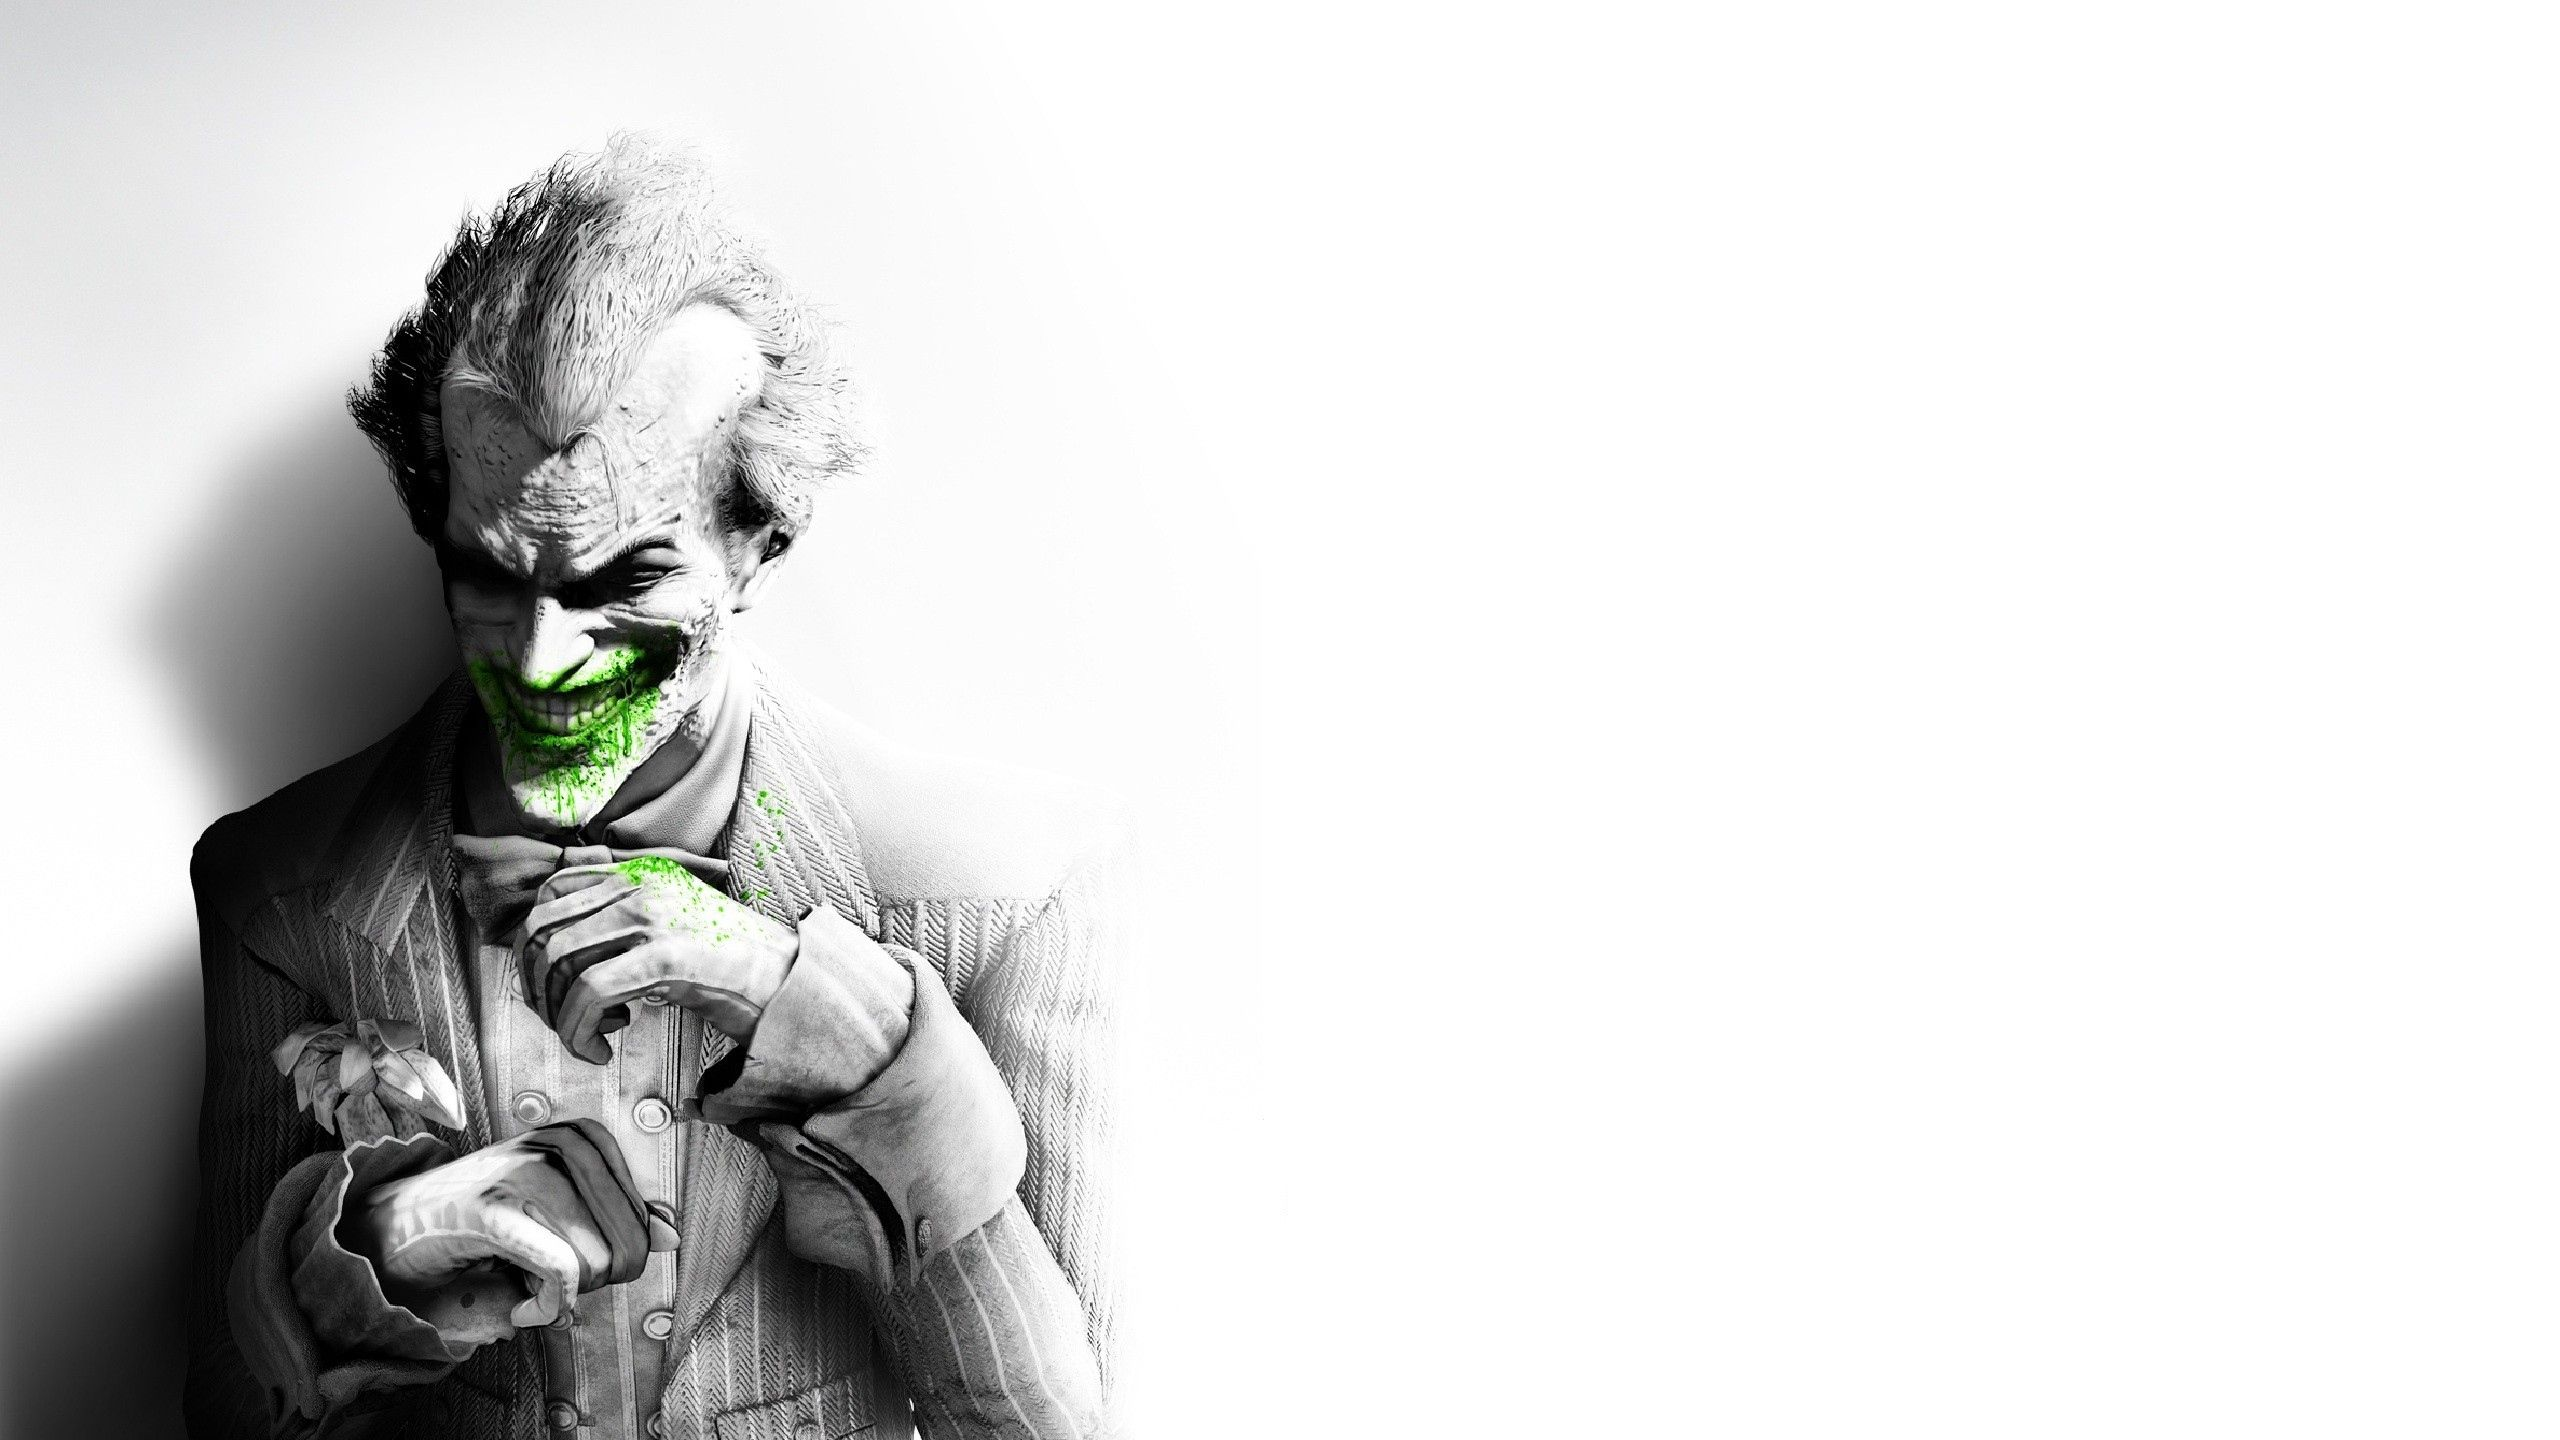 Great Wallpaper Mac Joker - 6f5b1ddfed48364f3a4562d78275f5e9  Snapshot_143393.jpg